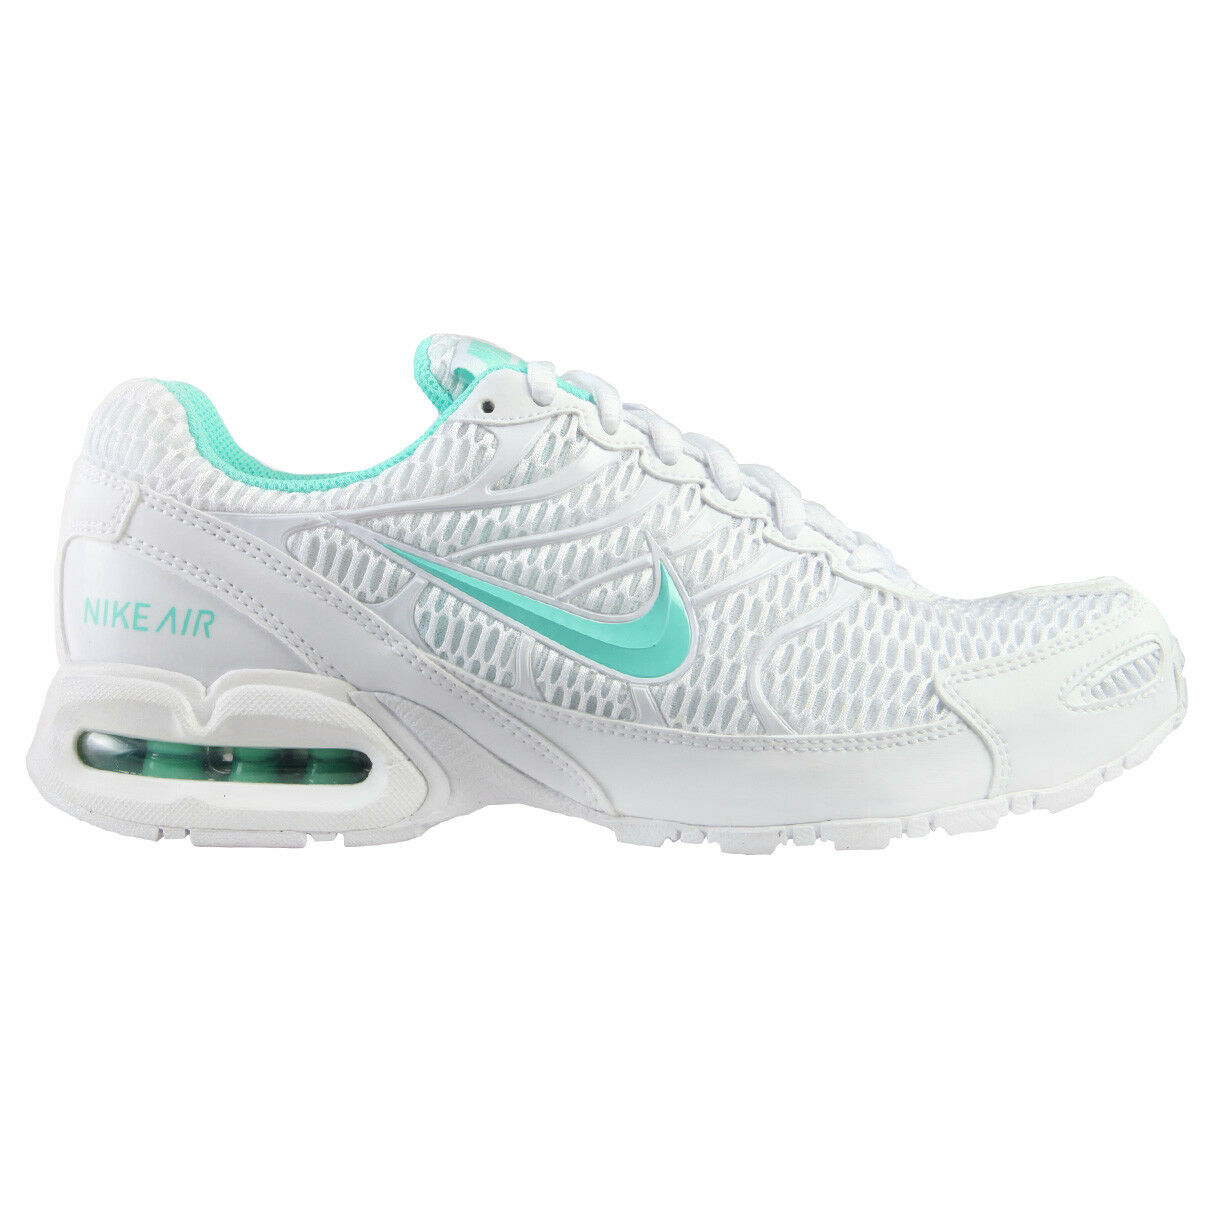 Nike Air Max Torch 4 Womens 343851-100 White Turquoise Running shoes Size 7